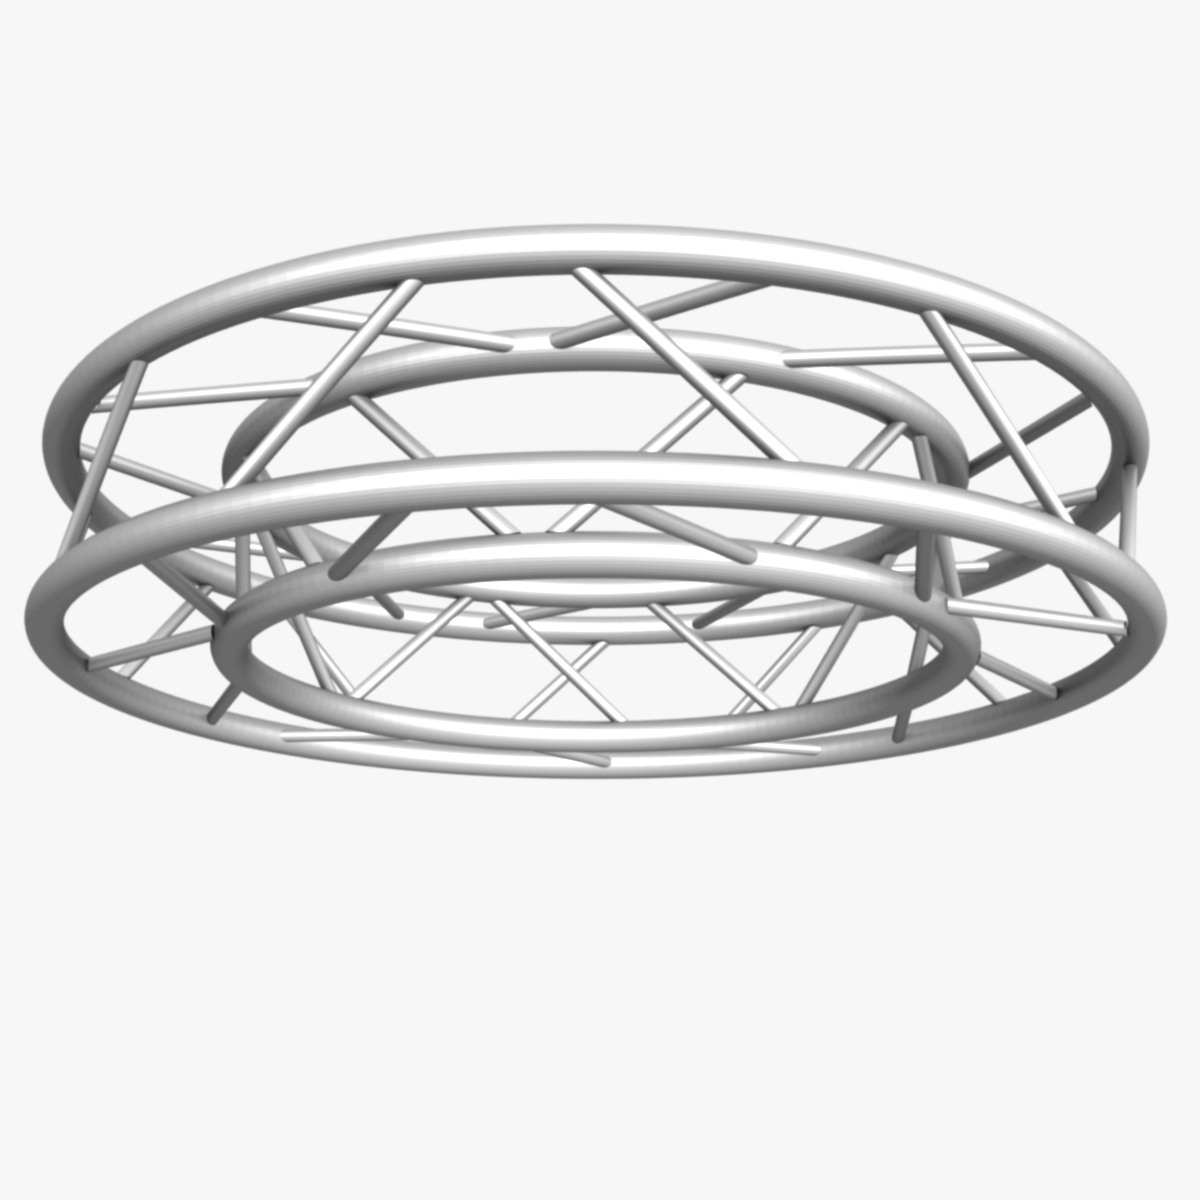 circle square truss full diameter 150cm 3d model 3ds max fbx c4d dae  obj 252298